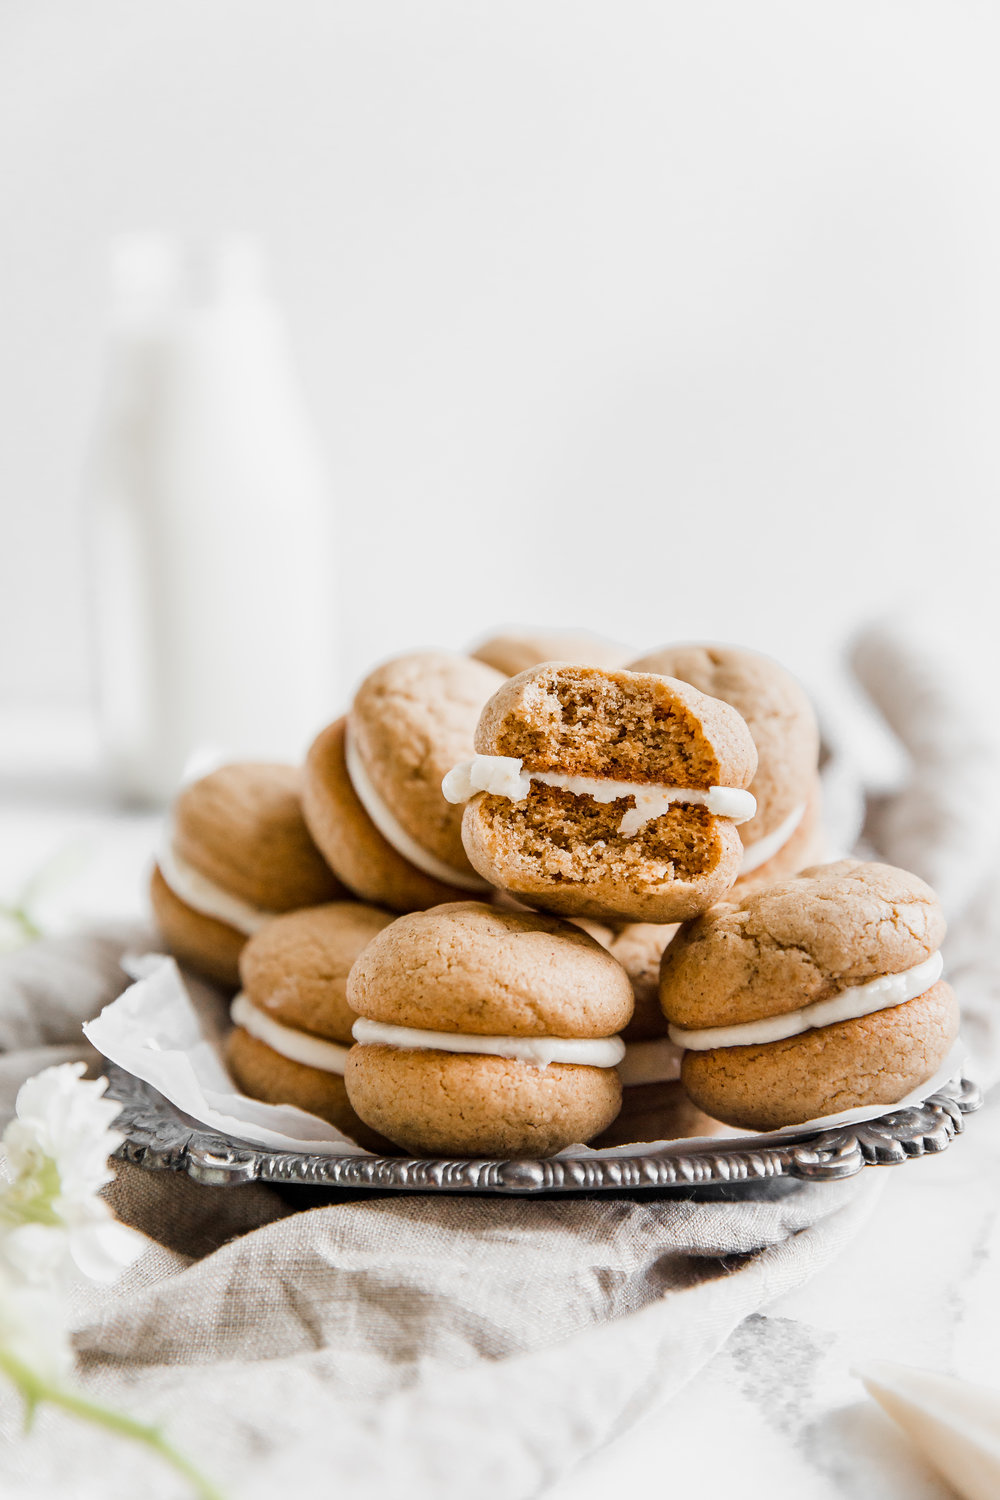 Ginger Chai Whoopie Pies || To Salt & See. Imagine eating a gingerbread cookie while enjoying a chai latte, then put those together to make these whoppie pies! The cookies are packed with fall spices, and the middle layer is a maple buttercream icing. Easy to make and perfect for sharing... or not ;)